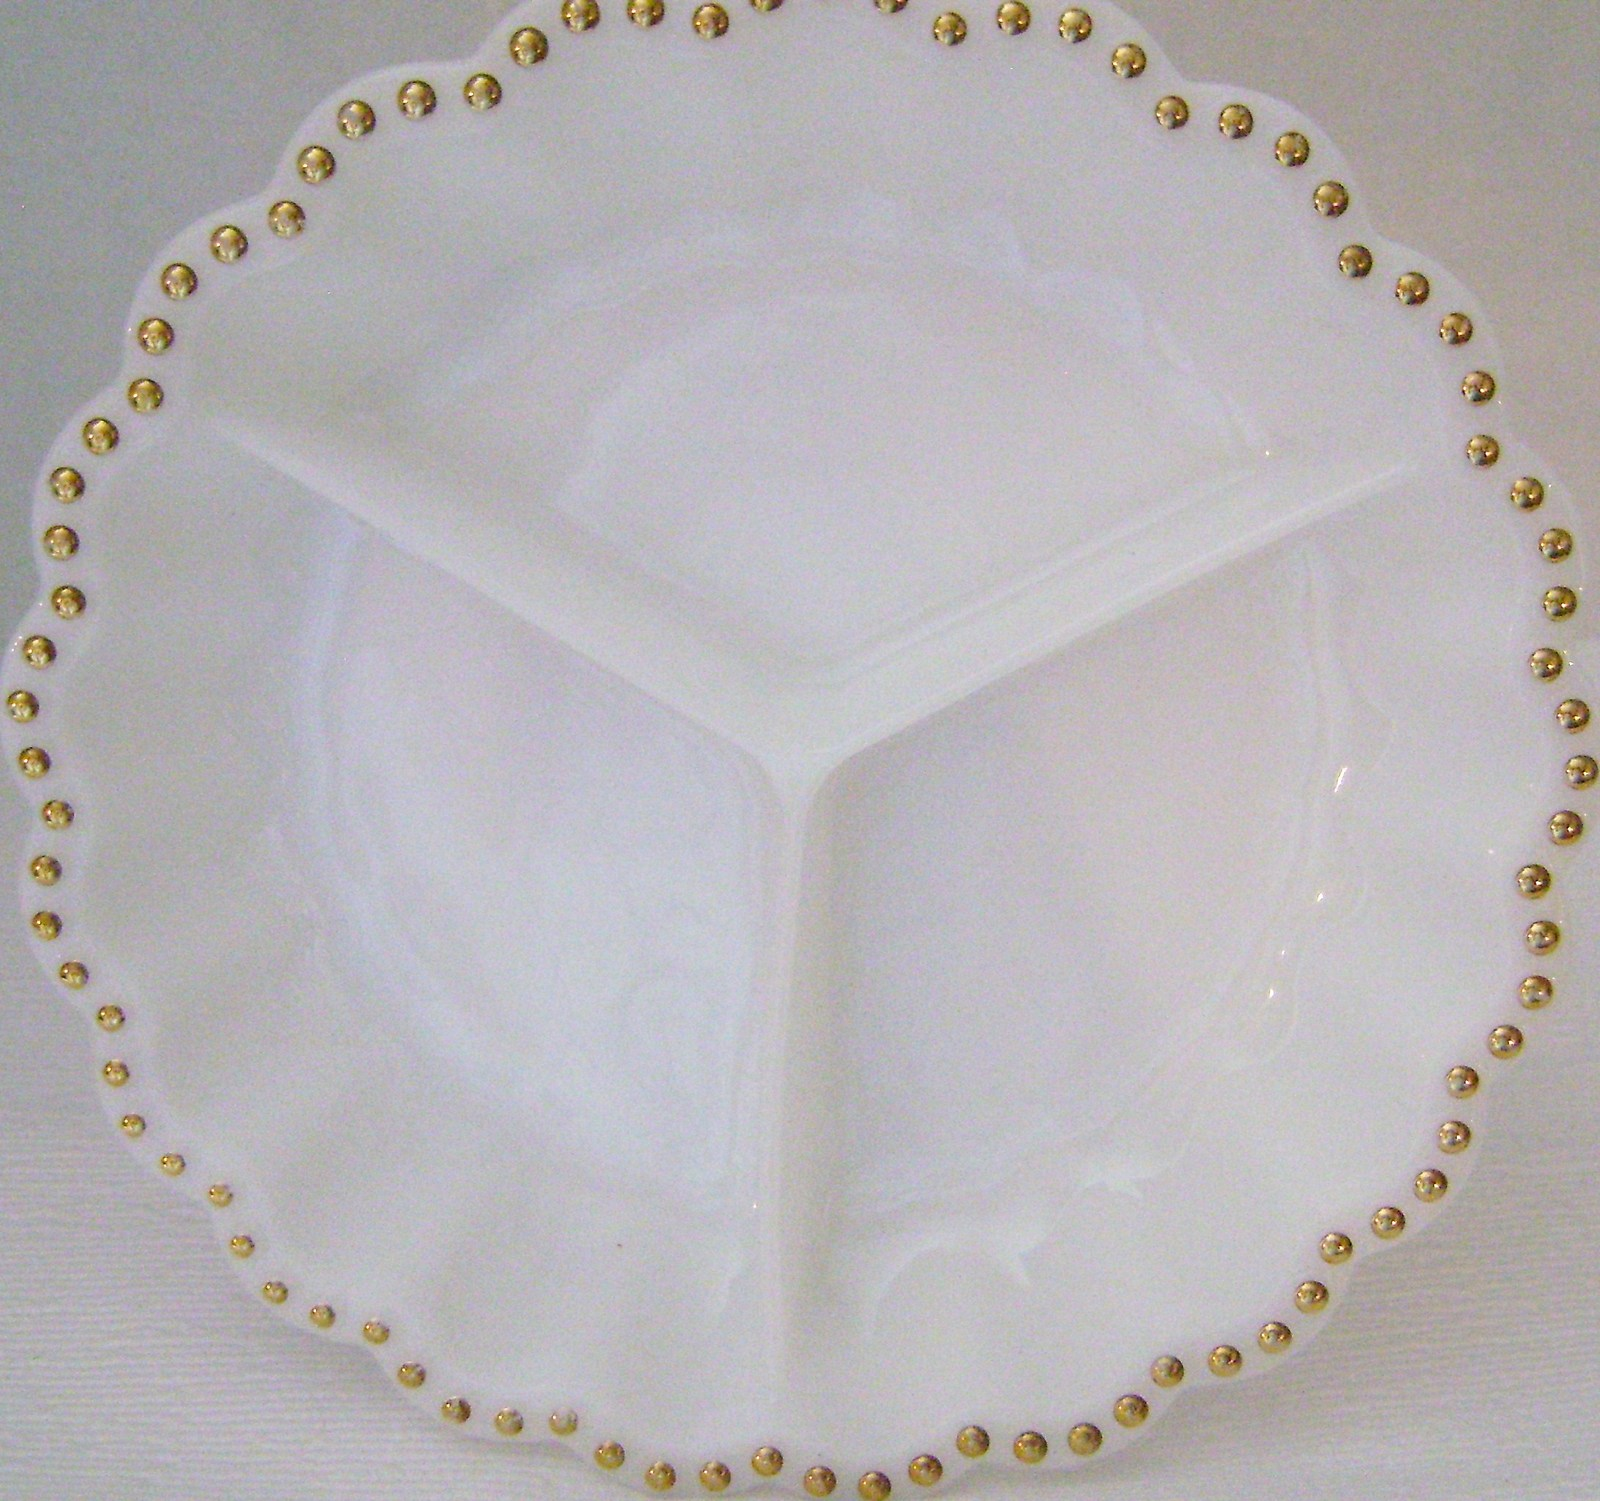 Primary image for Vintage Milk glass Divided Round  Relish  Dish with Gold Dots on the Rim